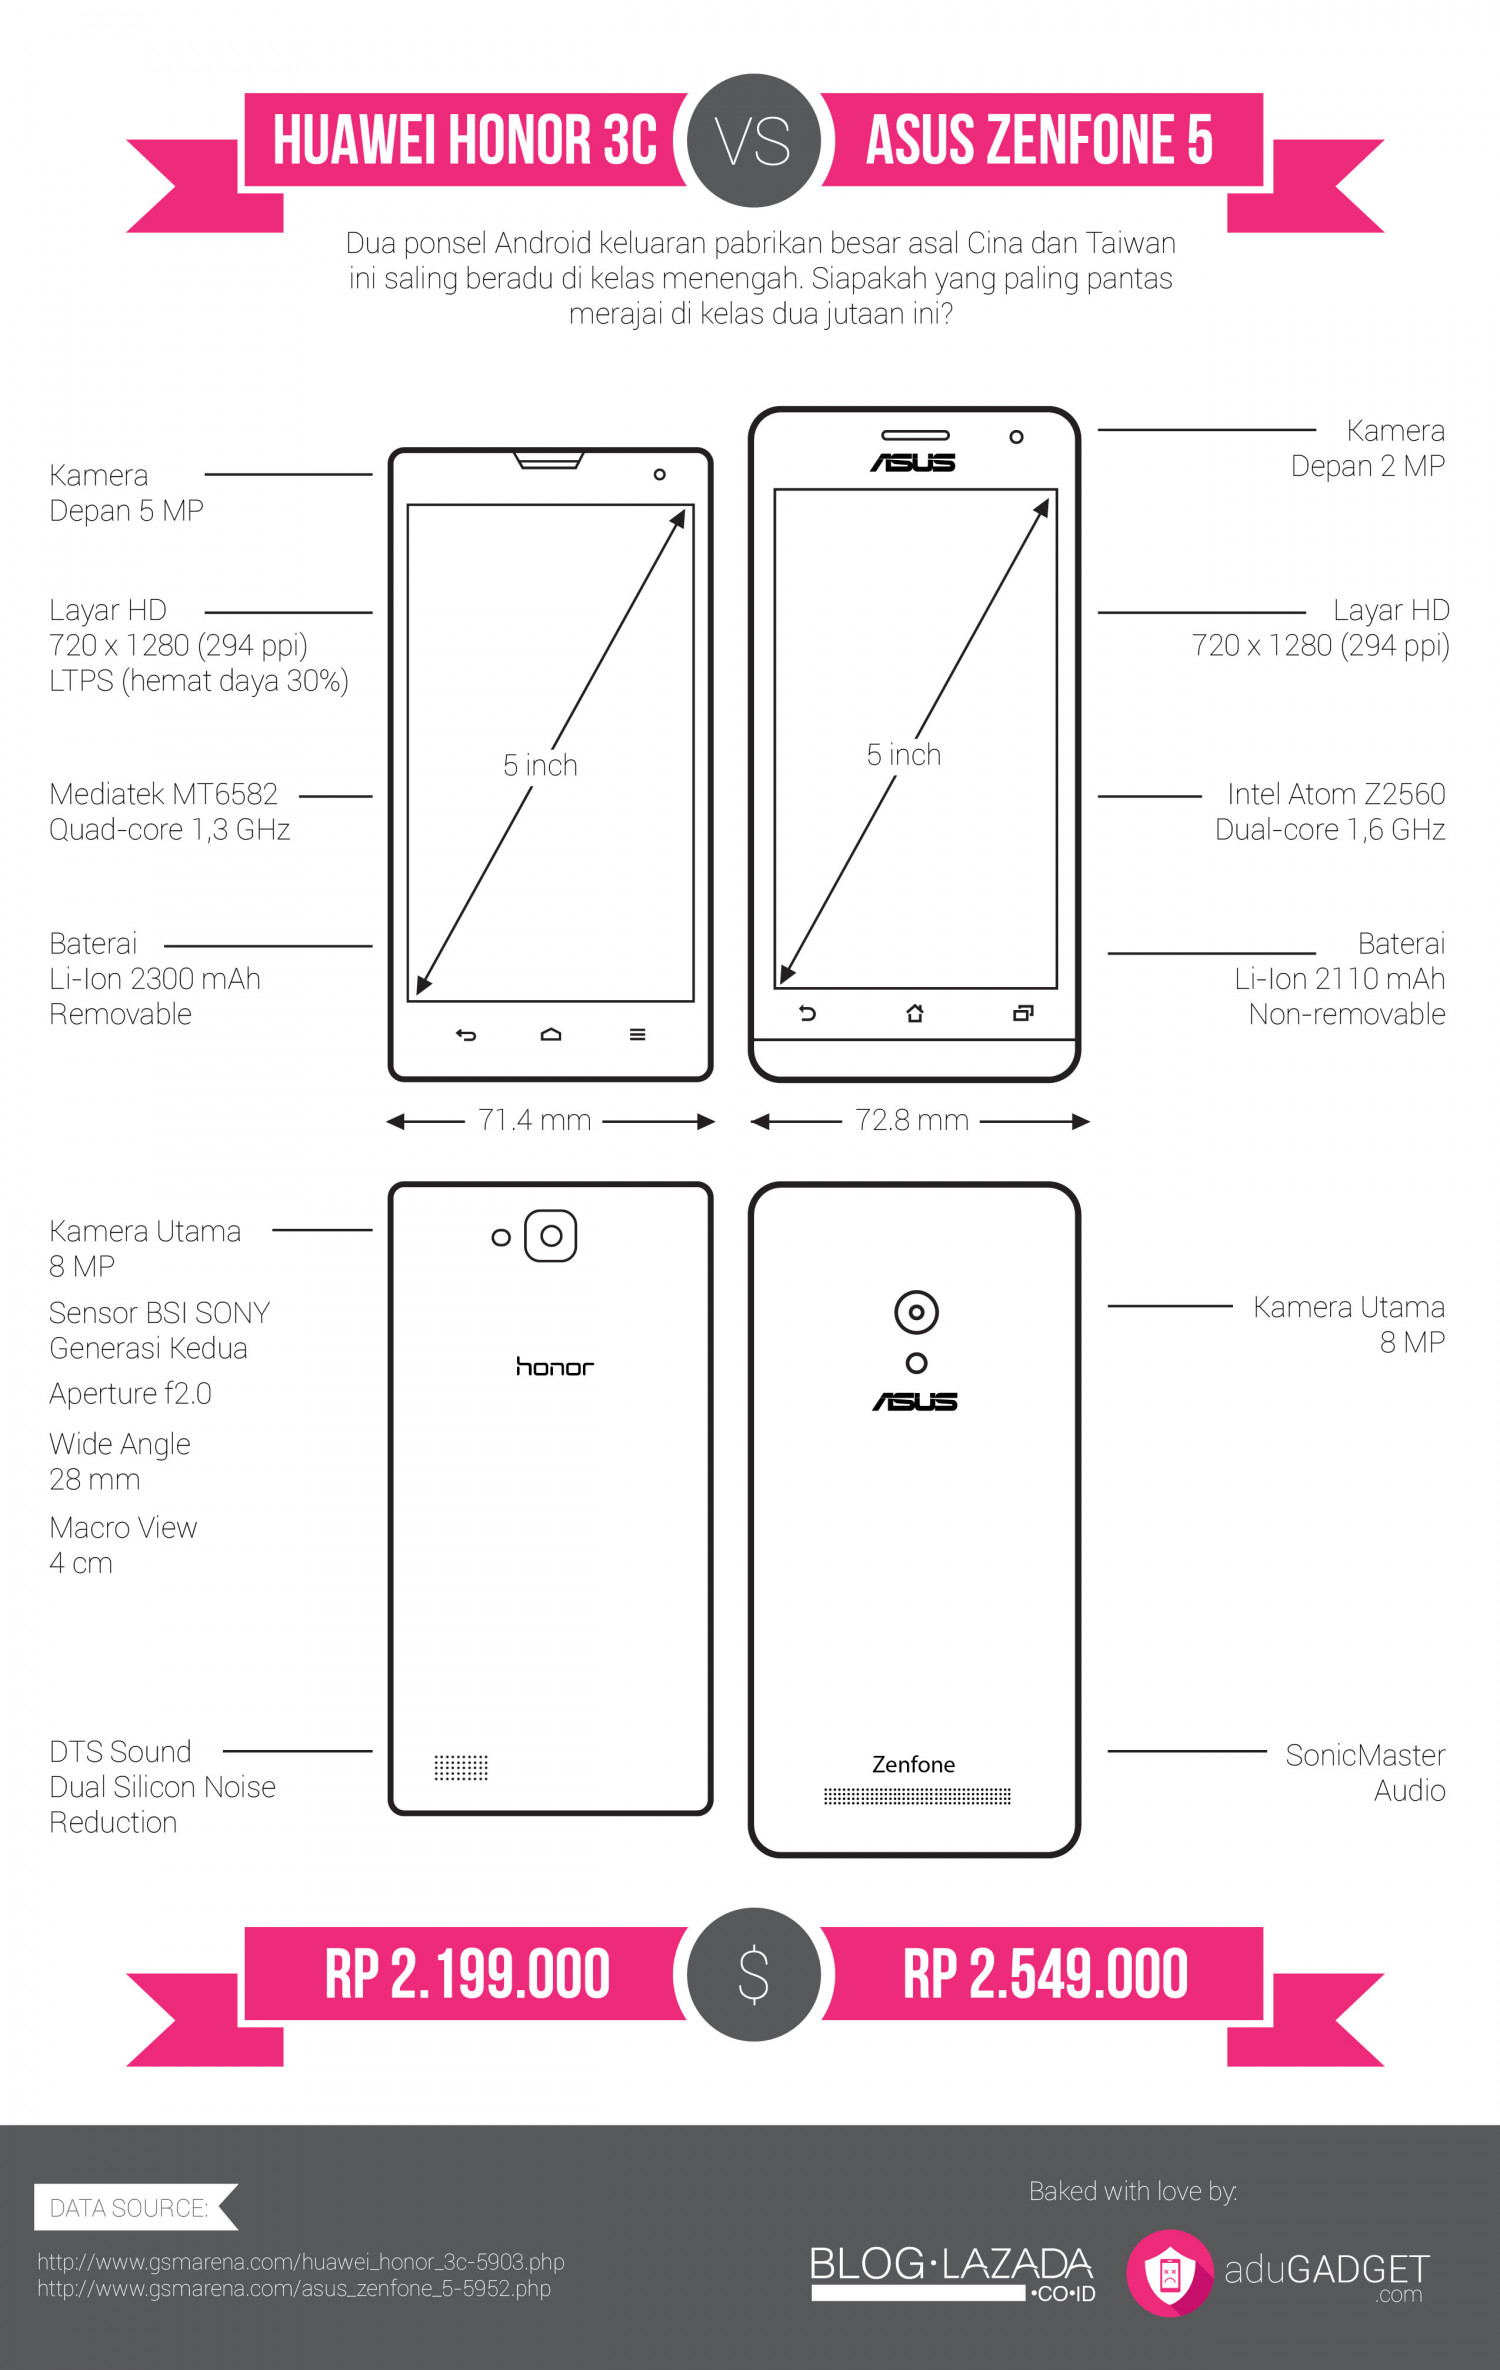 Huawei Honor 3C vs. Asus Zenfone 5 Infographic